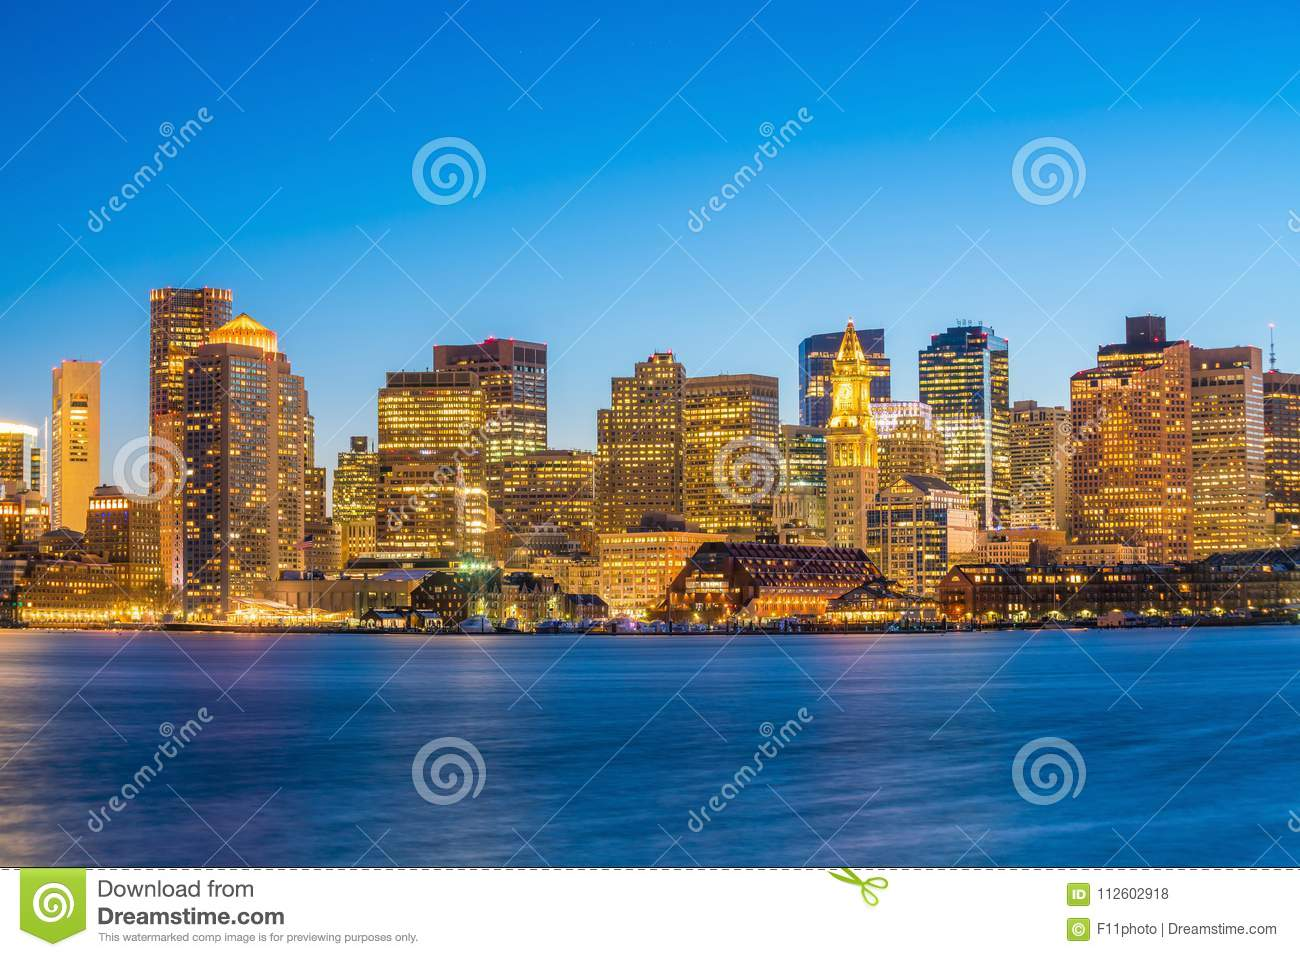 Panorama view of Boston skyline with skyscrapers at twilight in